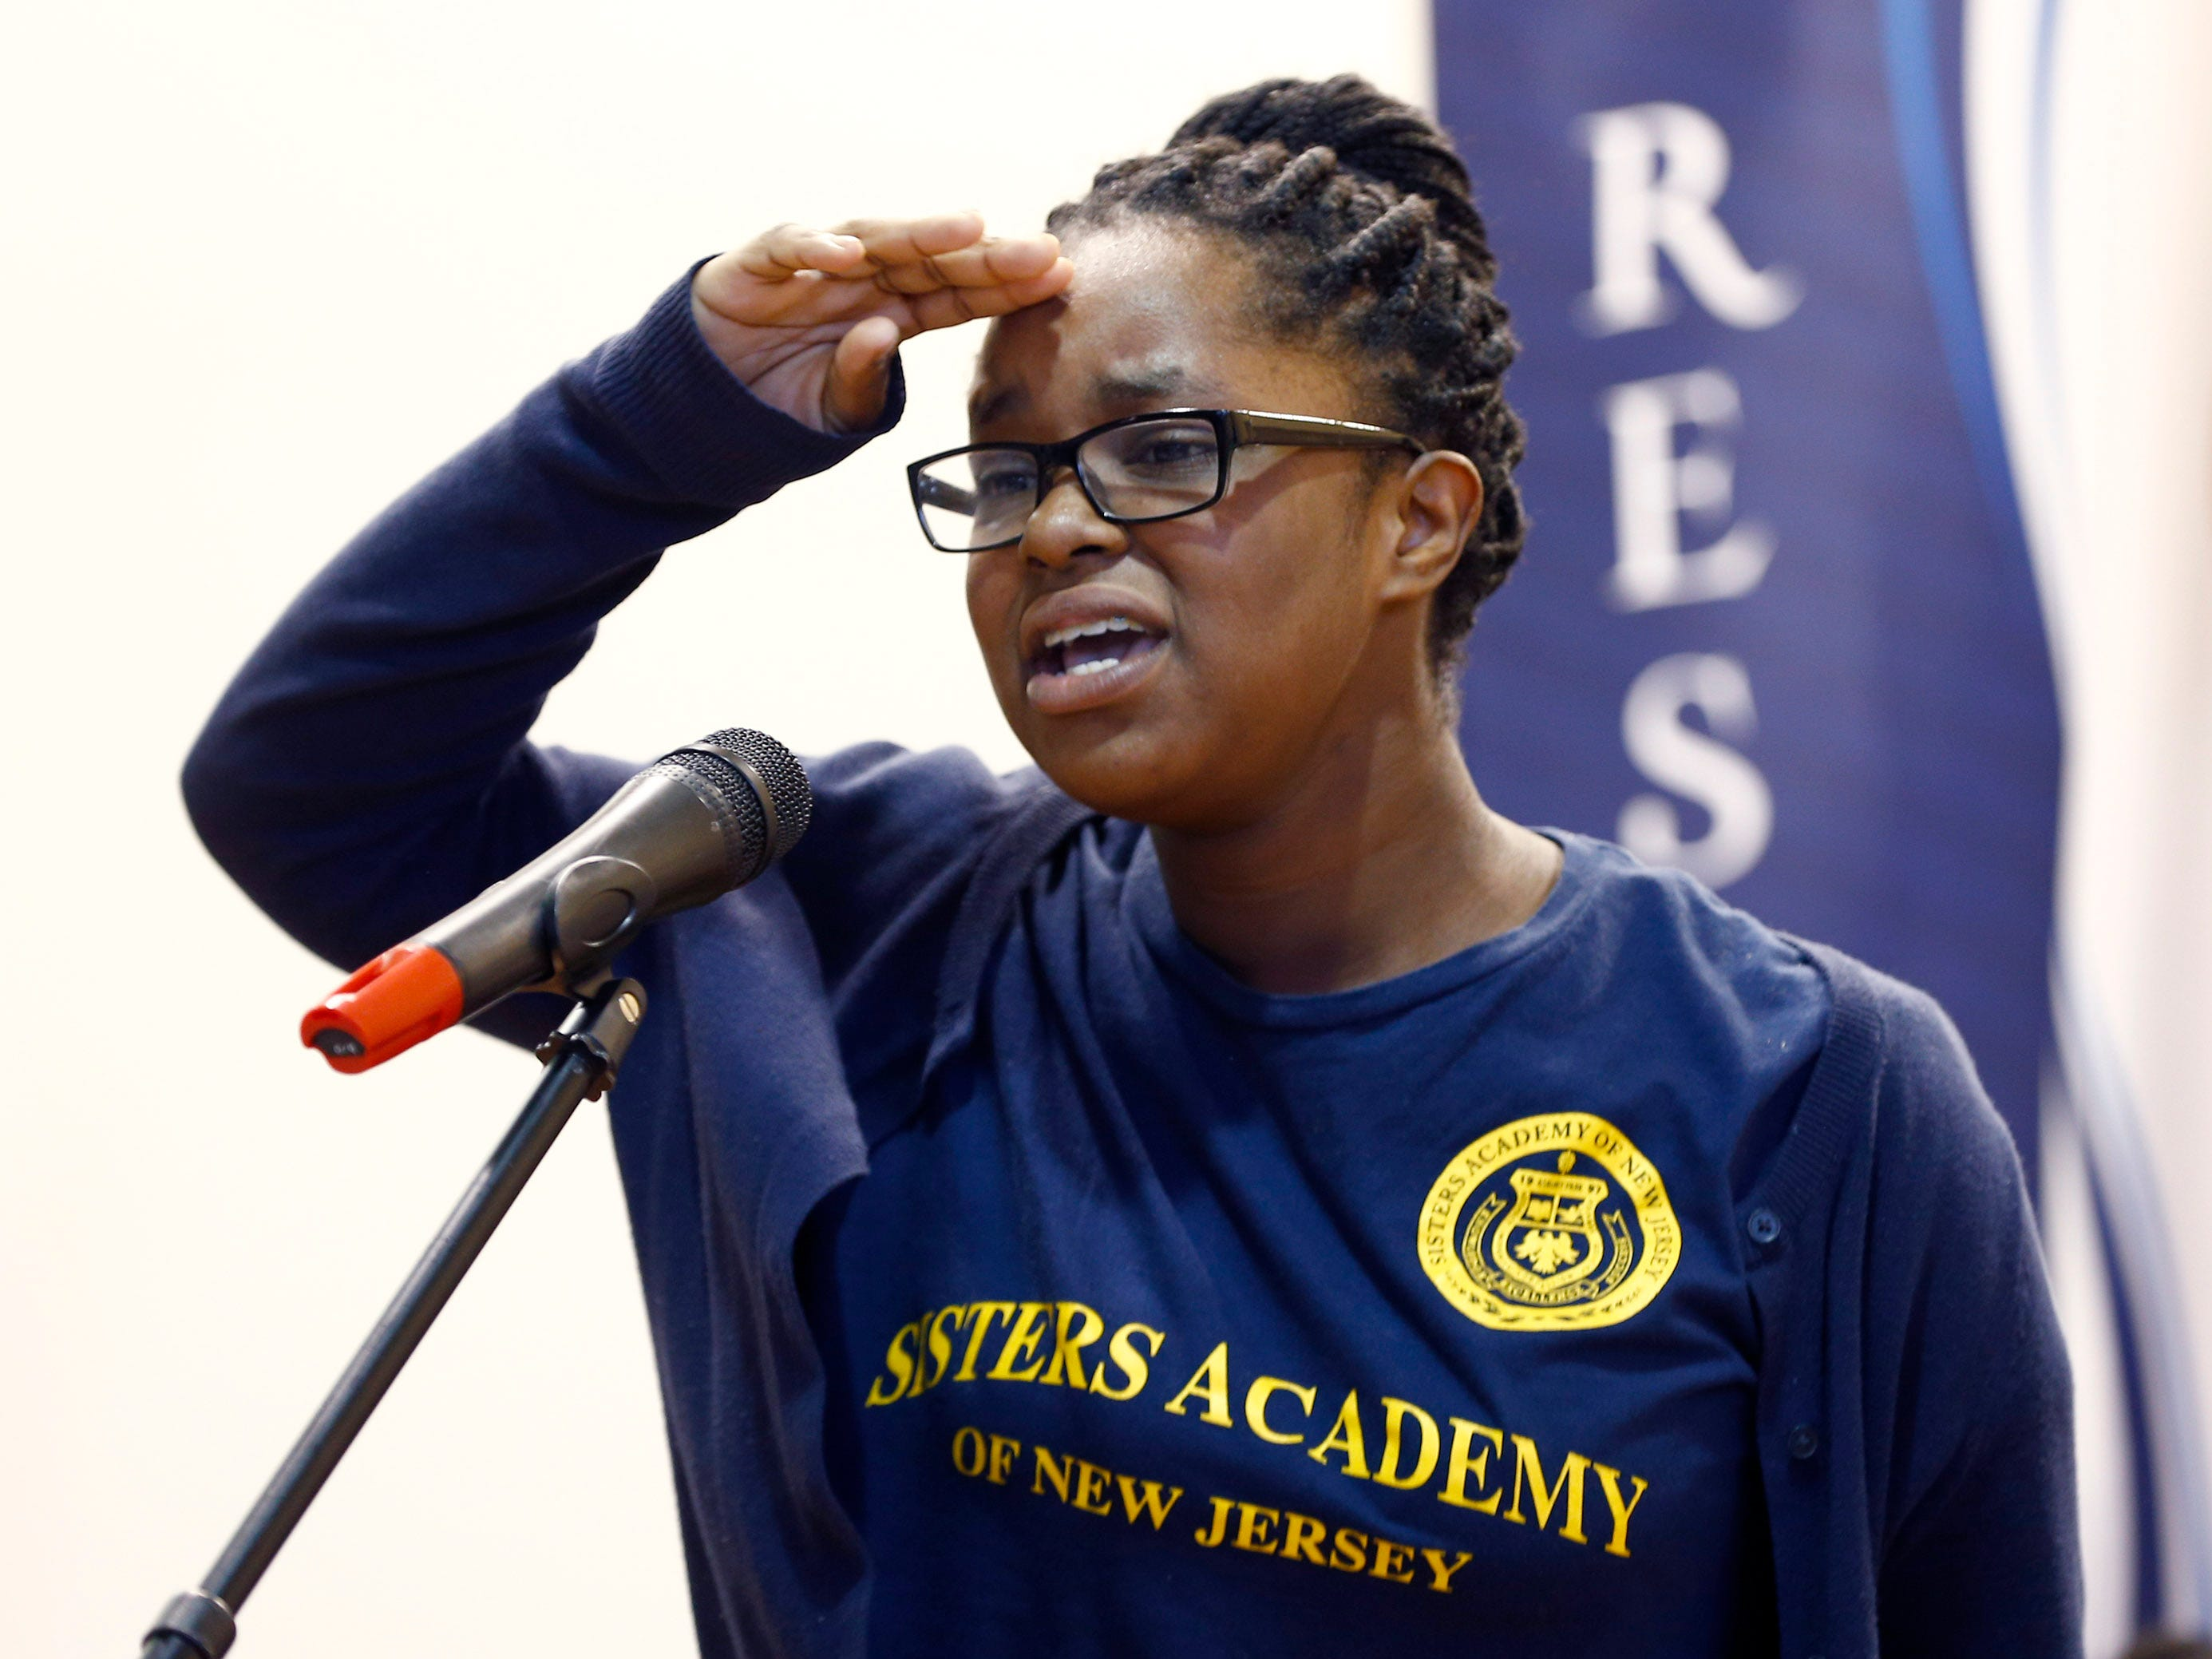 Sisters Academy 6th grader Rebecca Limage performs during the 8th Annual Miller Speaking Contest at the Asbury Park school Thursday, March 14, 2019.